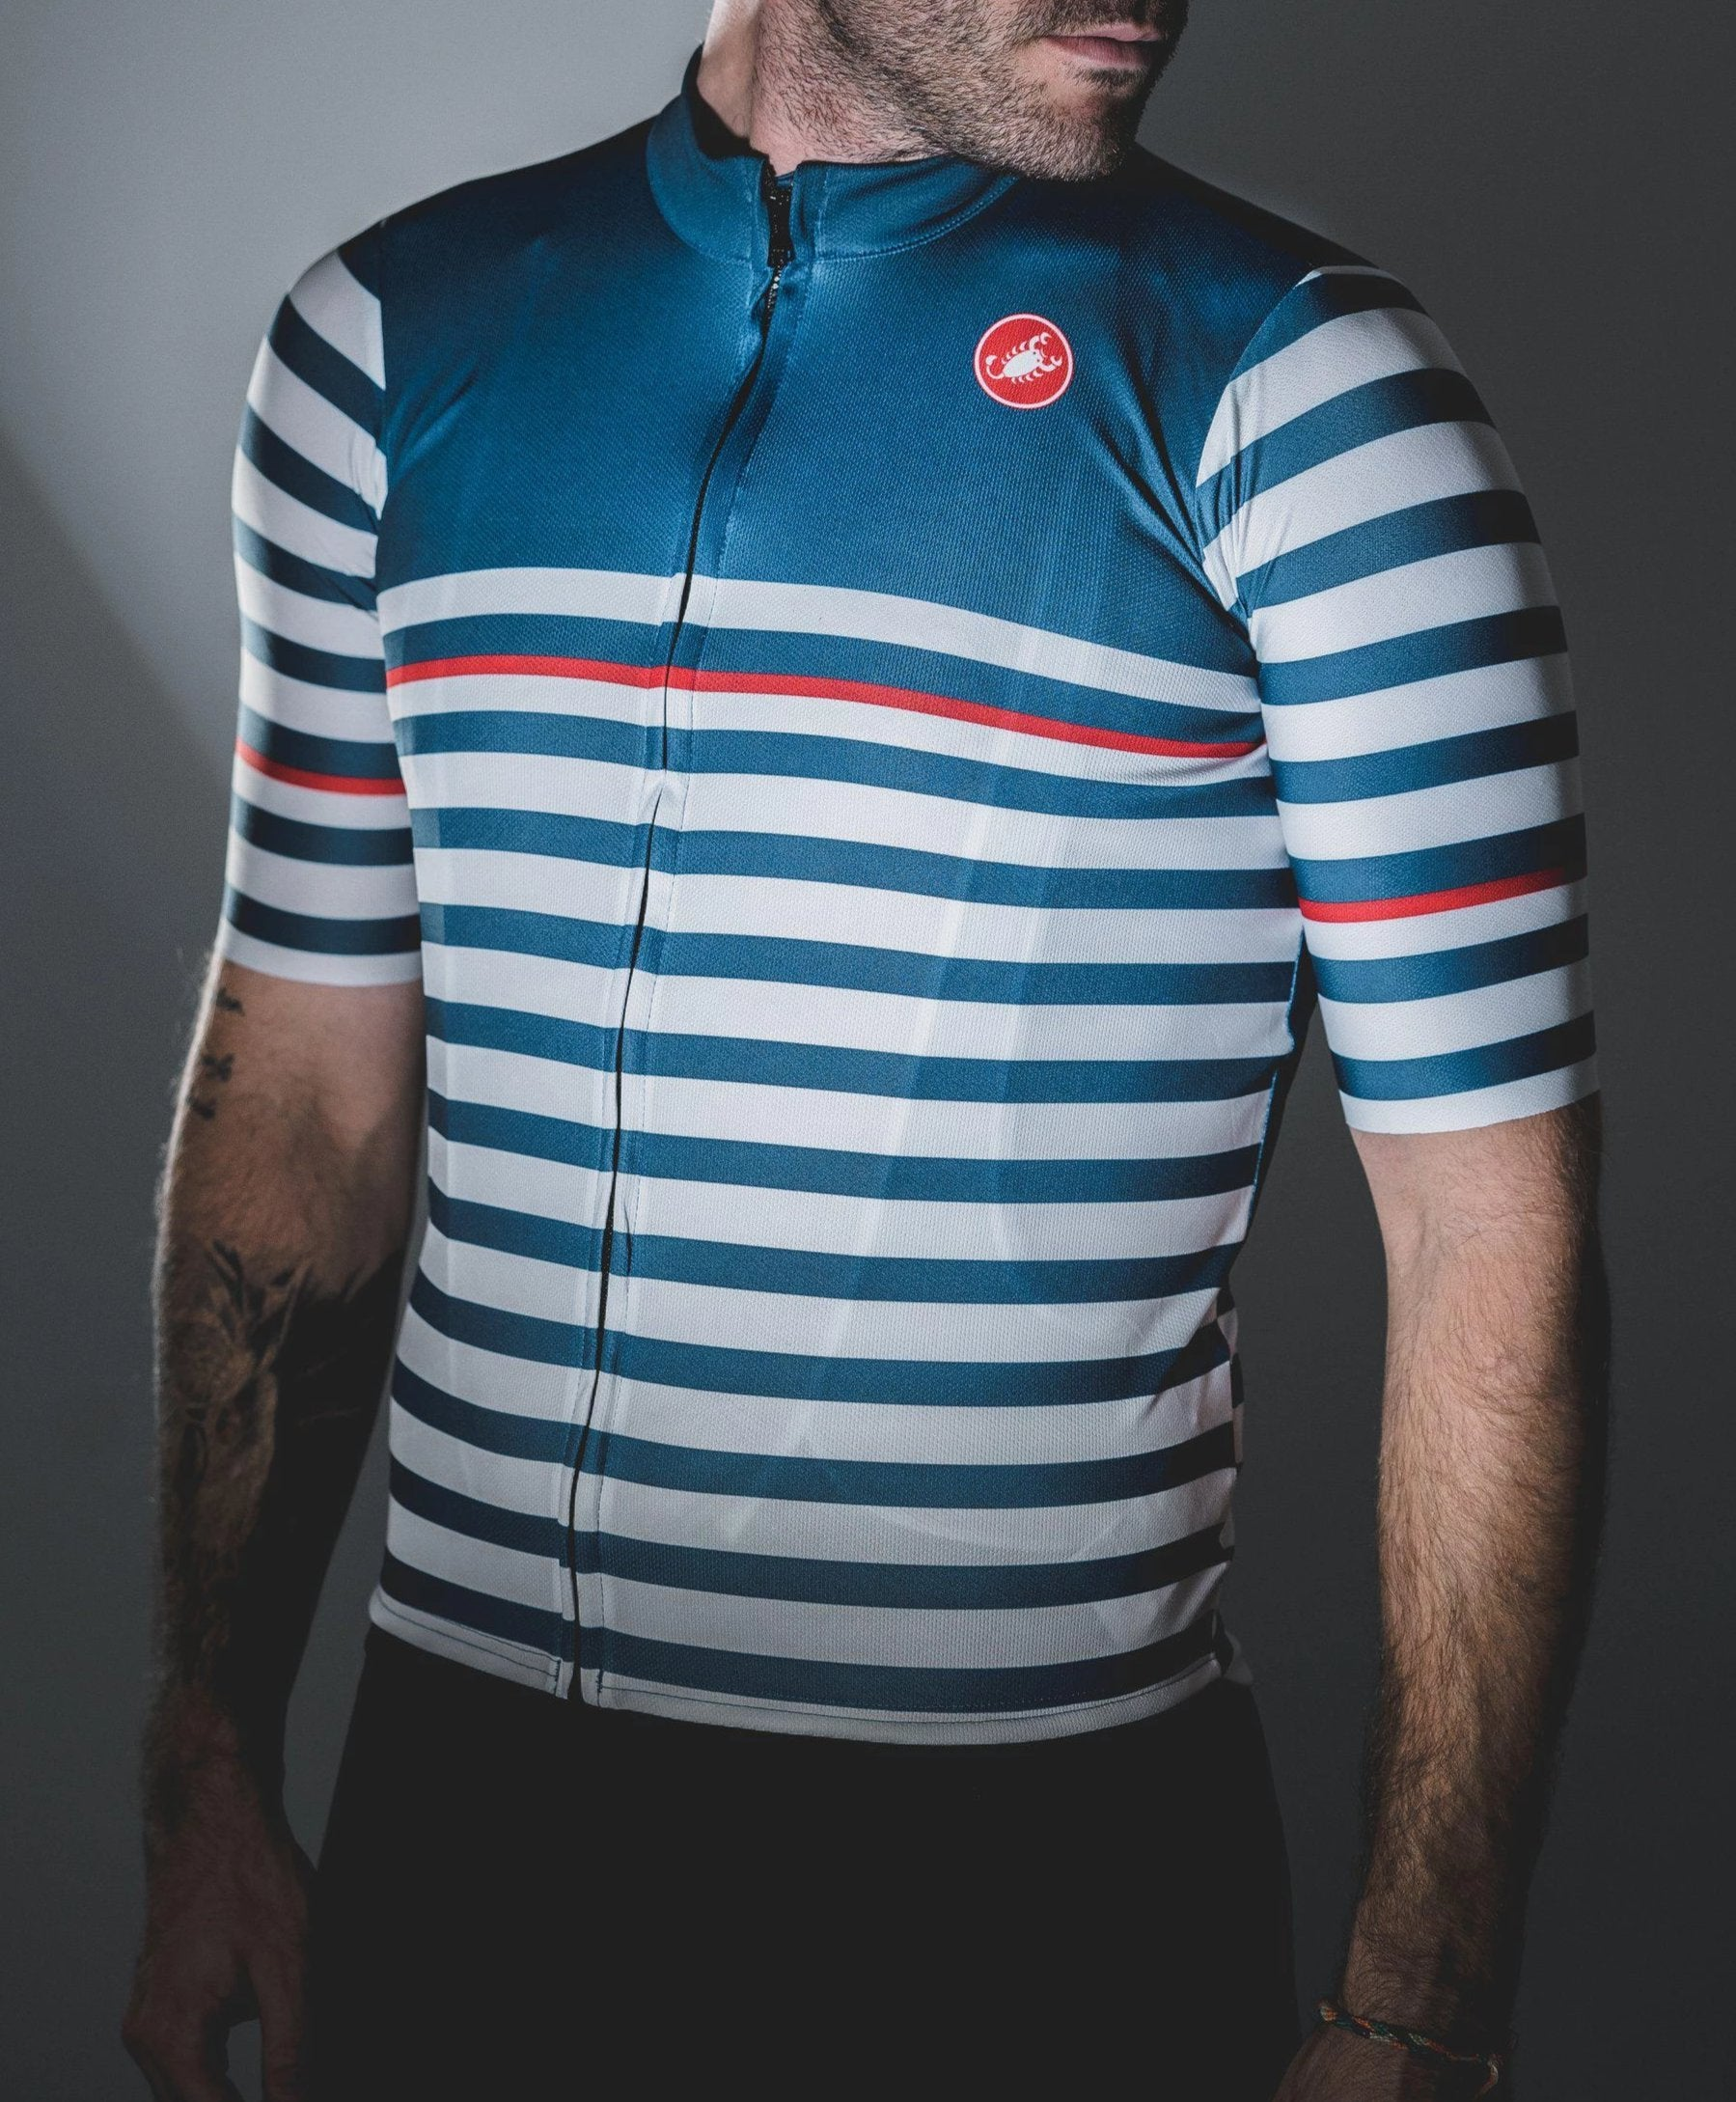 Castelli-Castelli World Champs Squadra Jersey - Sailor--saddleback-elite-performance-cycling